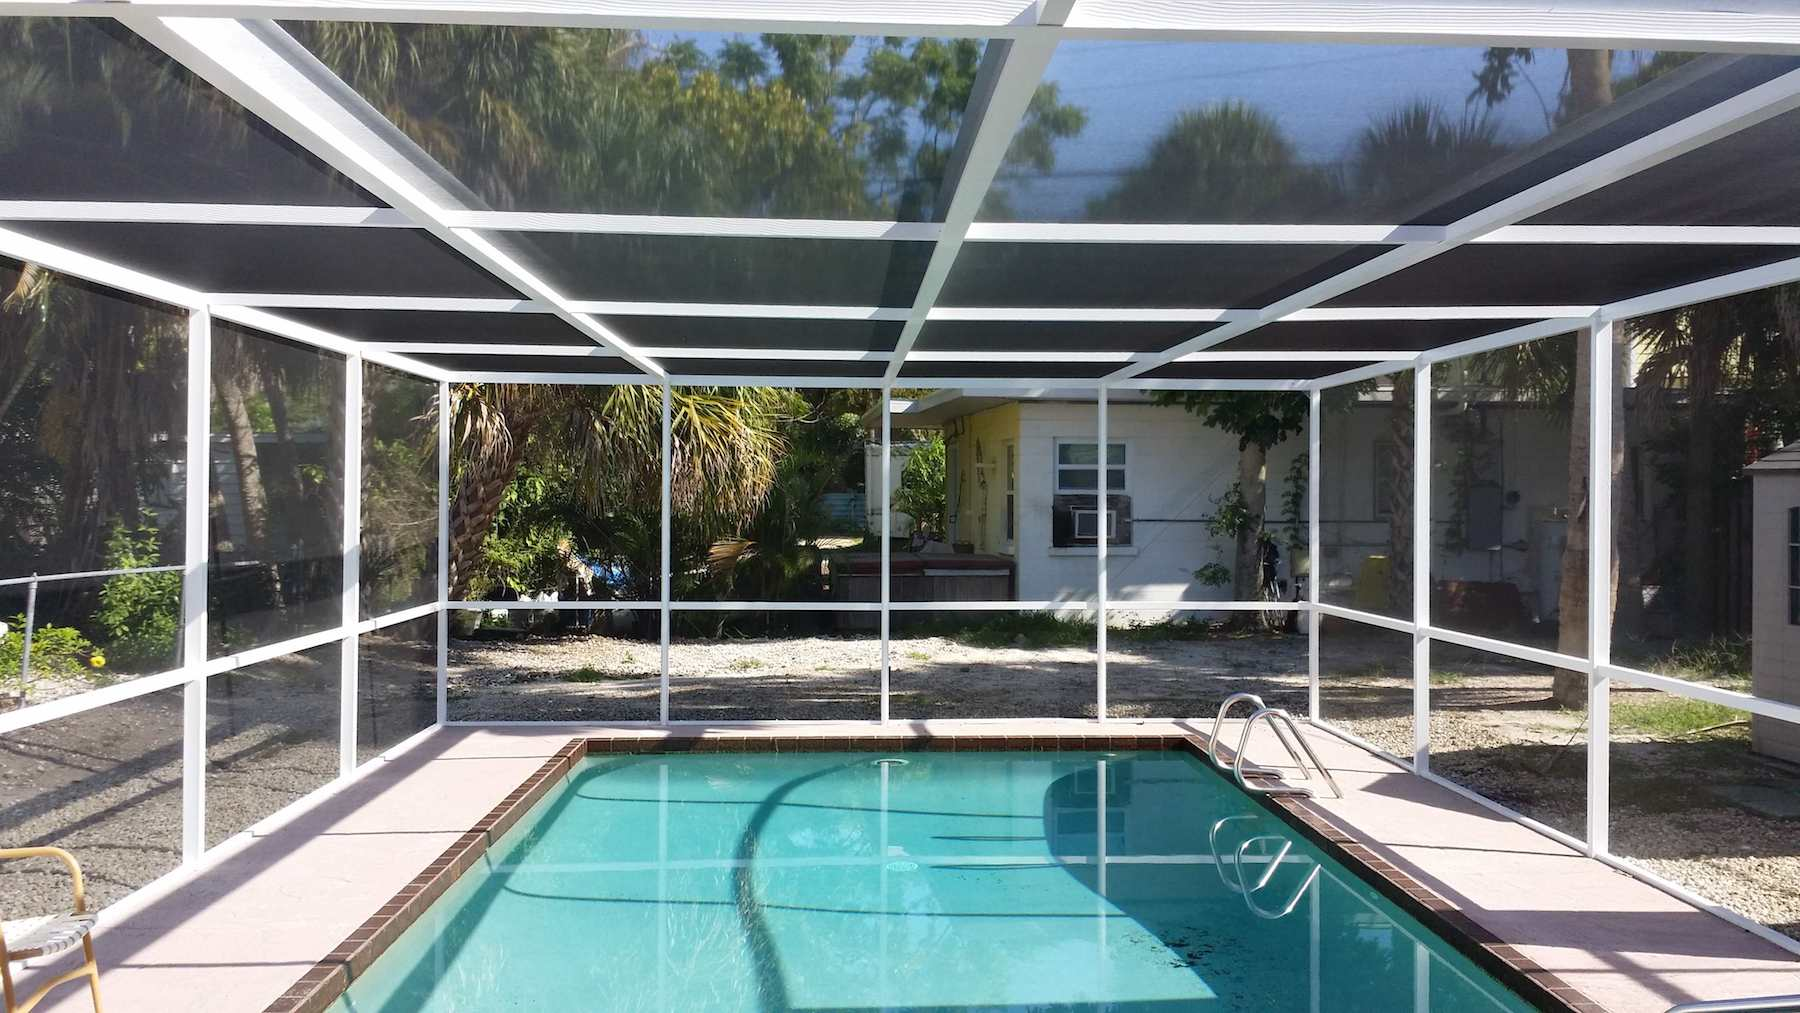 Santee-San Diego County Pool Screen Enclosures & Screen Repair Services